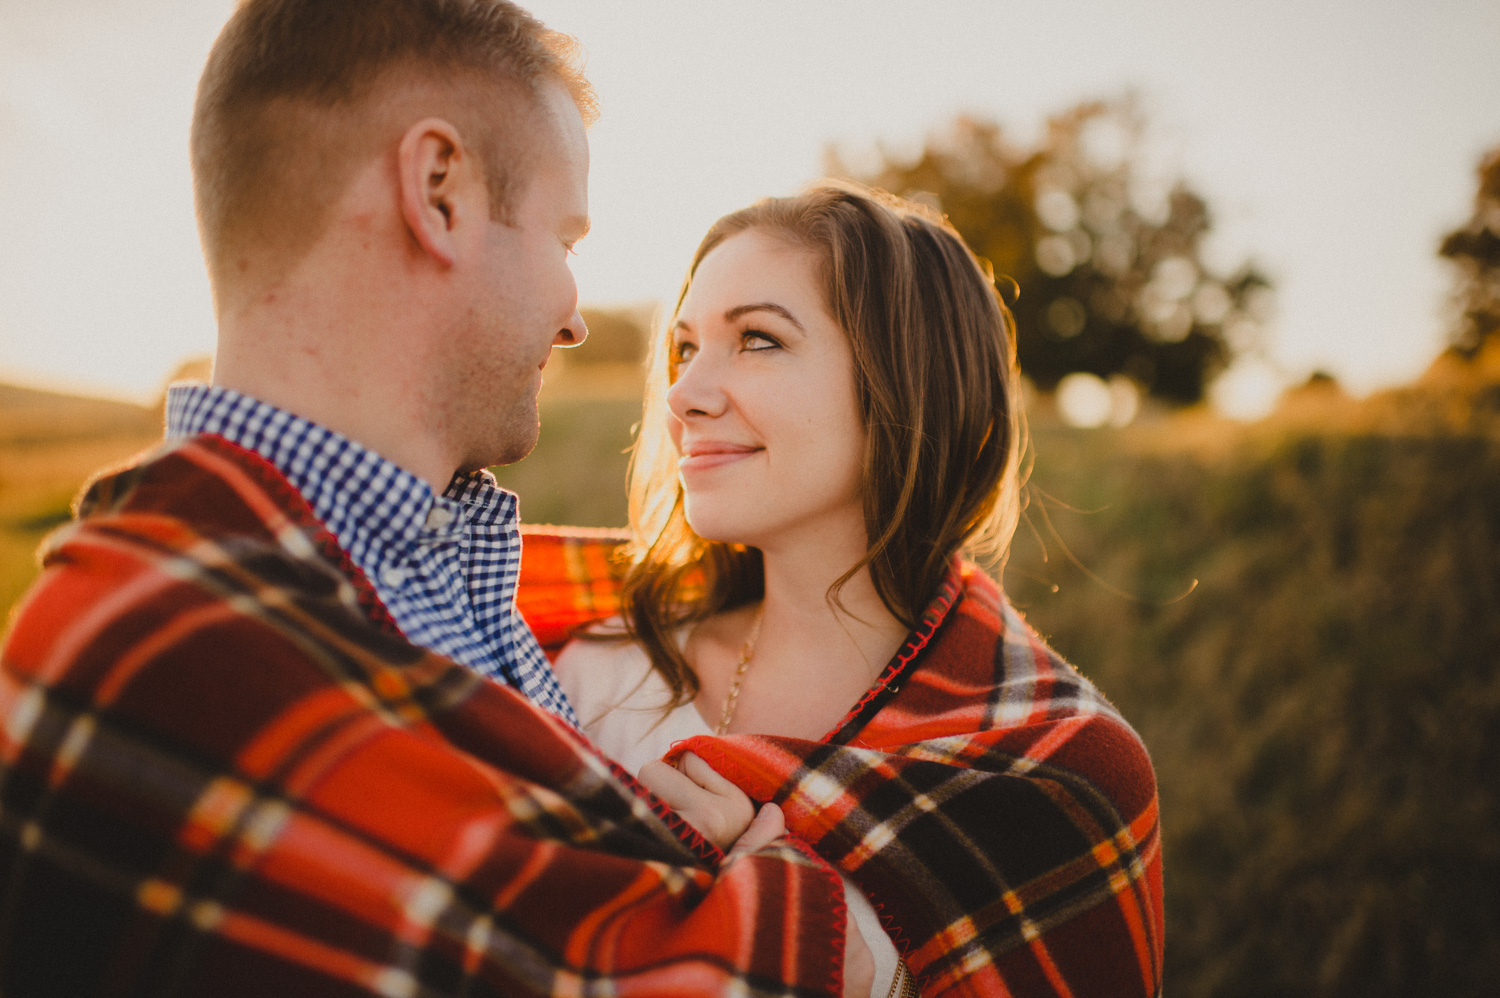 143-valley-forge-engagement-session-photographer-12.jpg